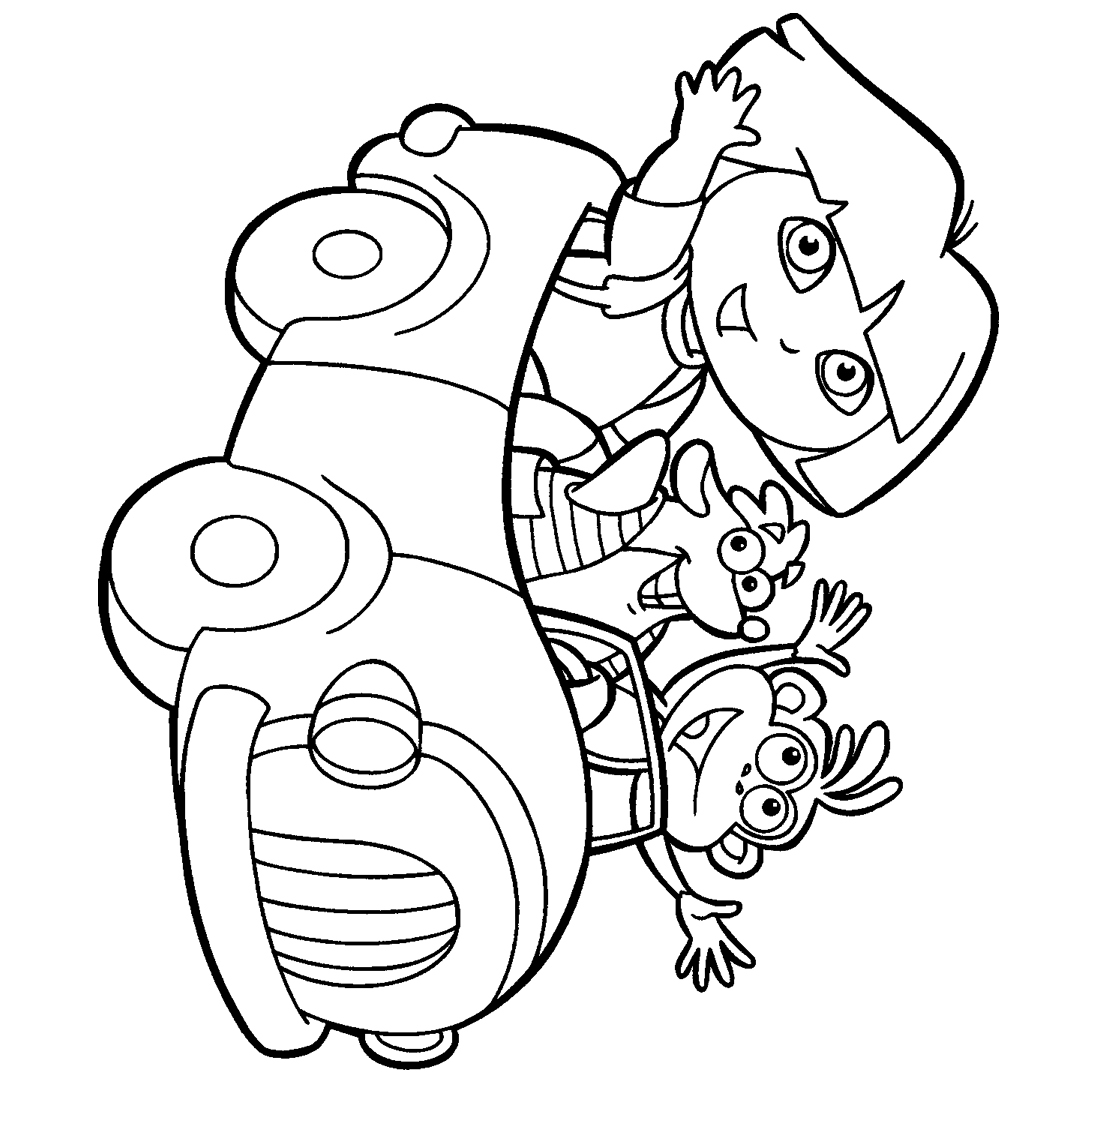 download dora the explorer coloring pages 5 print - Dora The Explorer Pictures To Color And Print